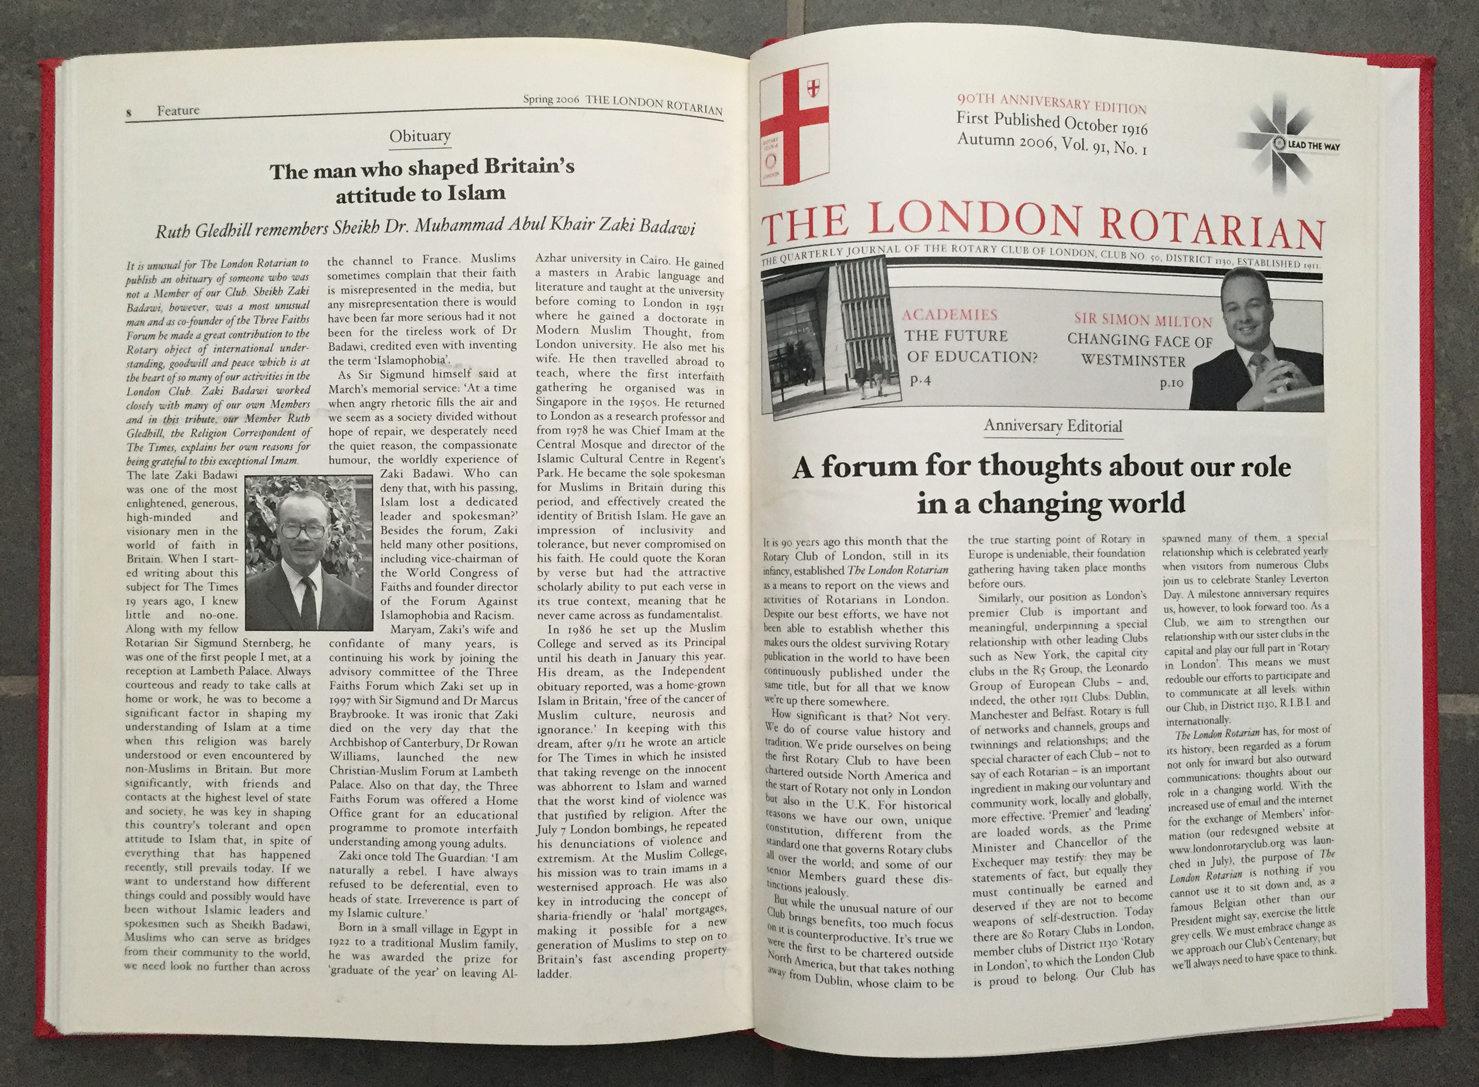 The London Rotarian bound volume